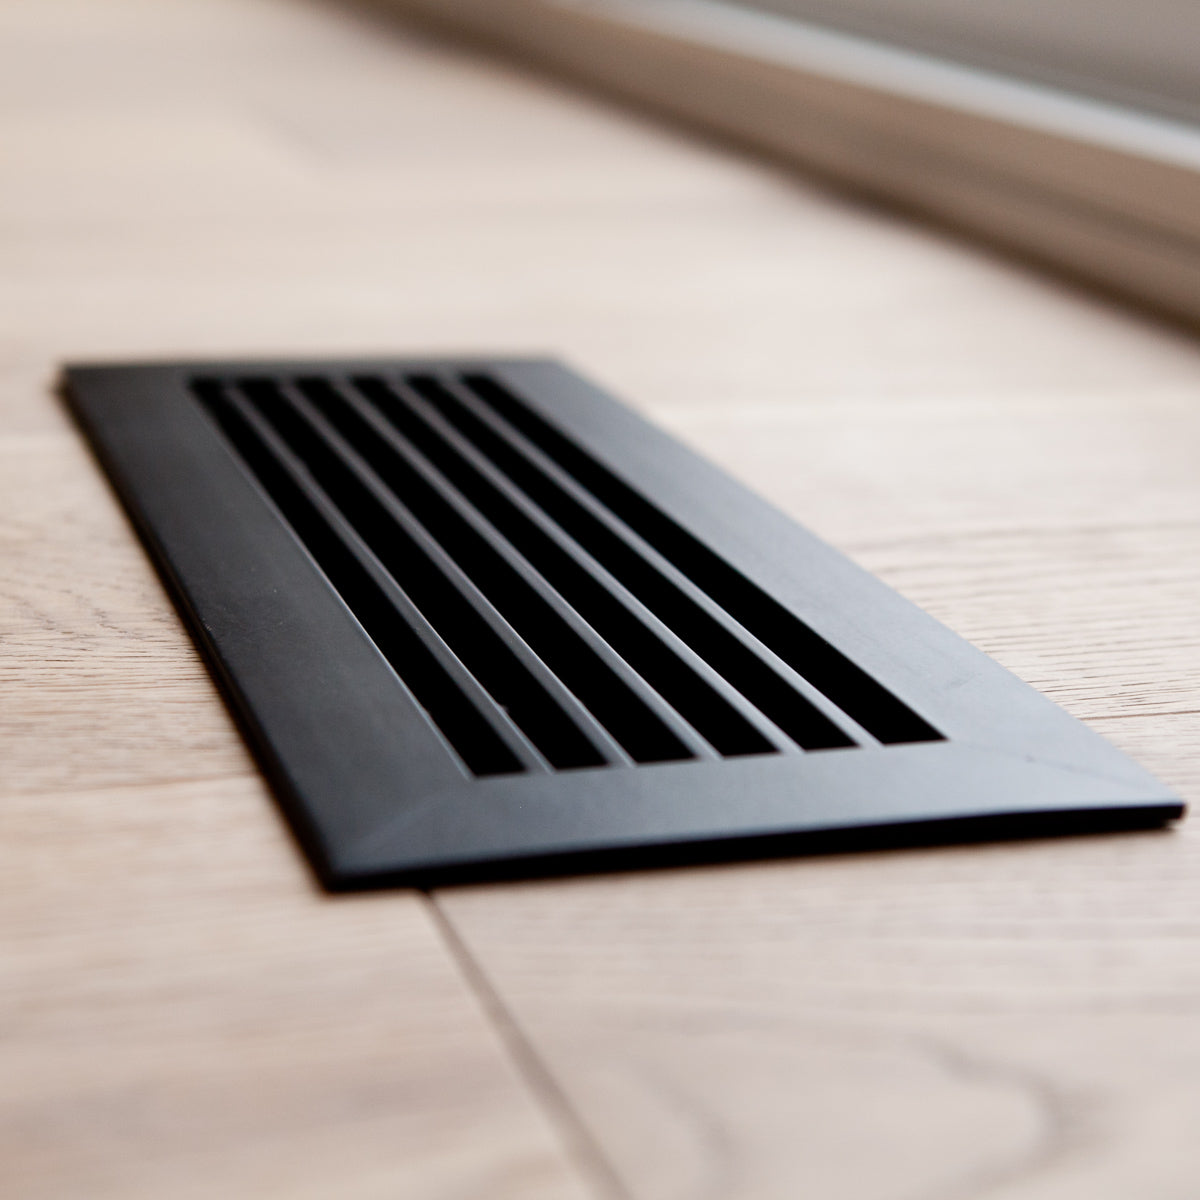 Parallel Heating Vent Mdrn Design Group Inc